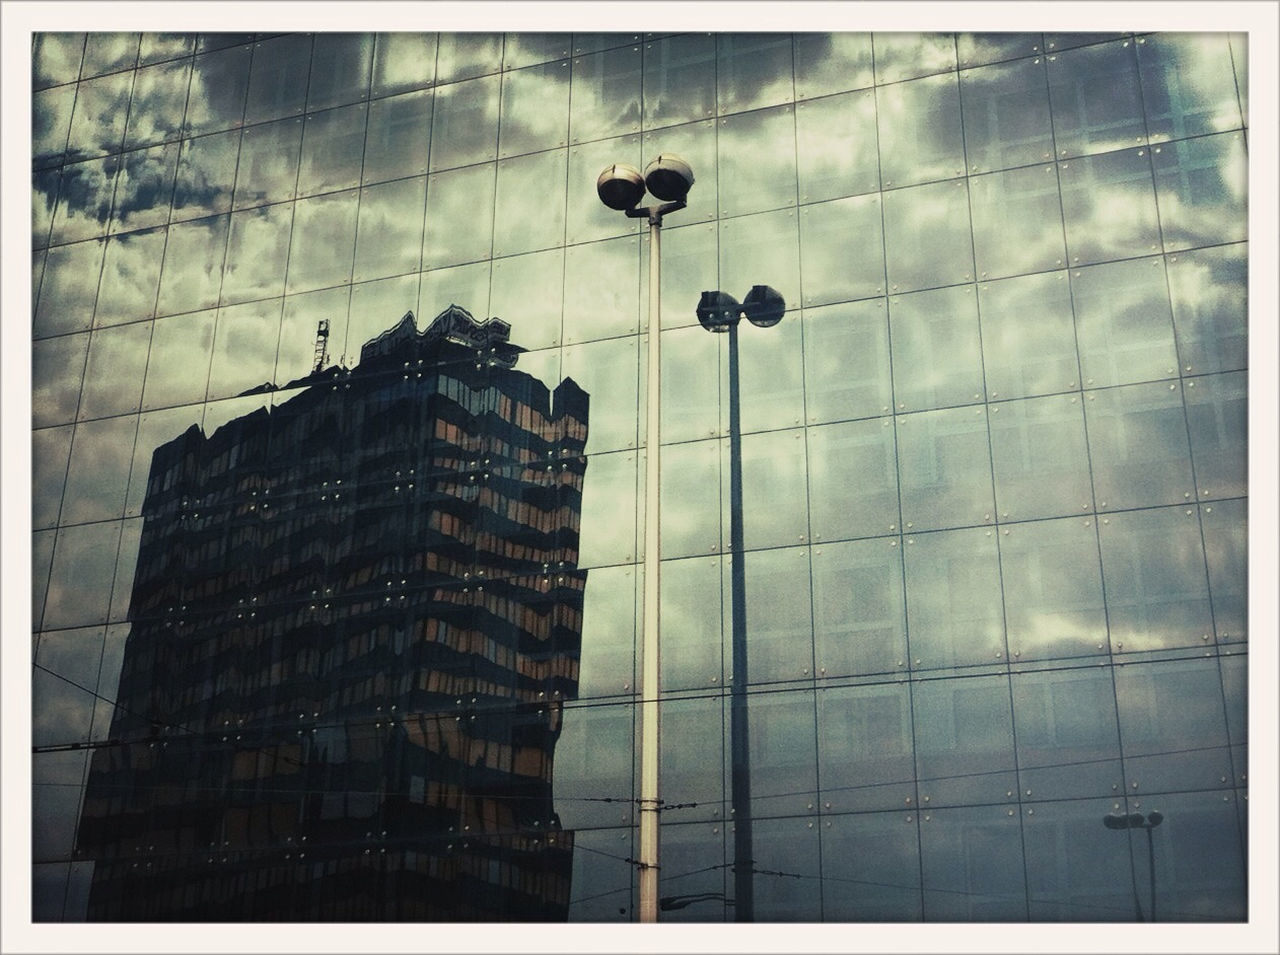 Reflections on glass building